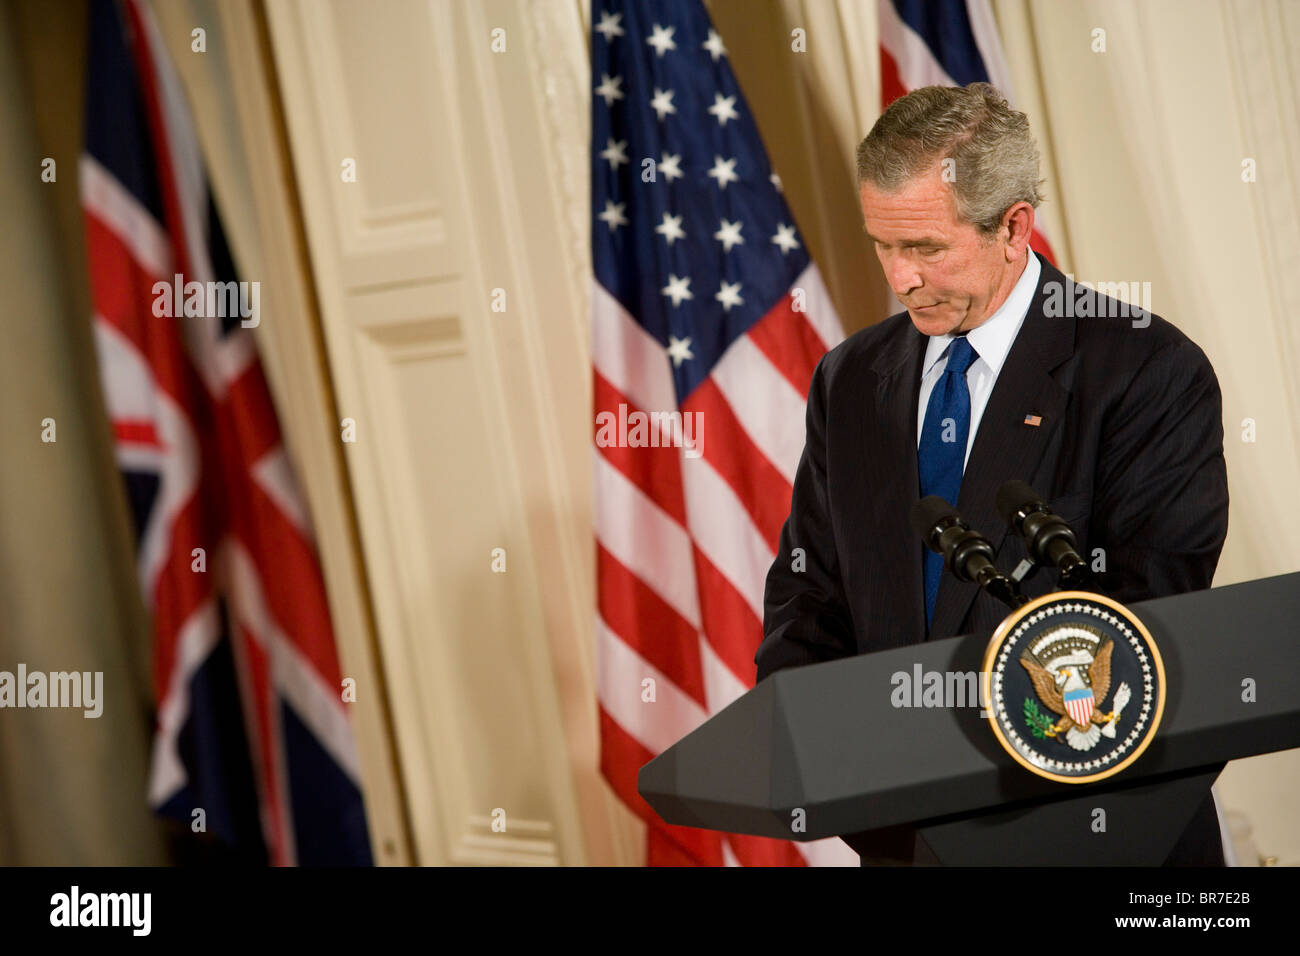 President Bush at White House press conference. Stock Photo